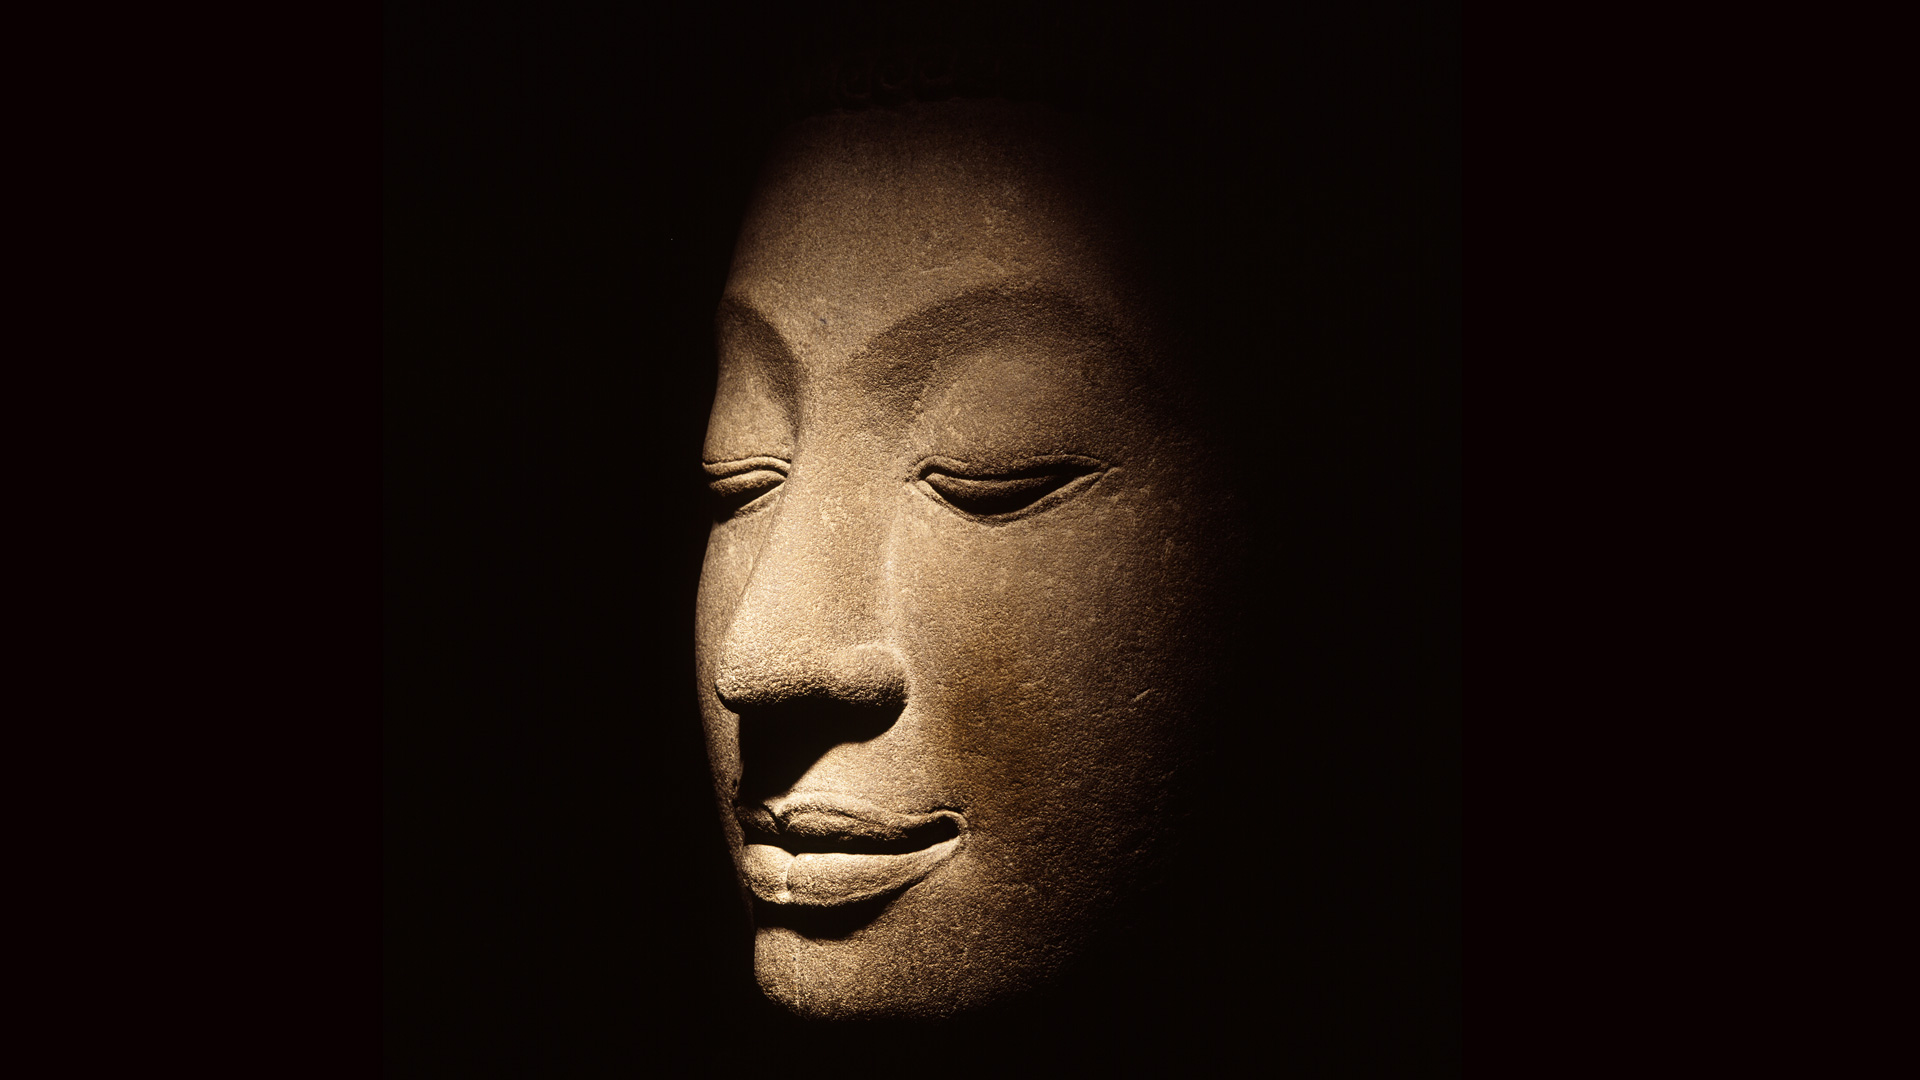 buddha_head_hero